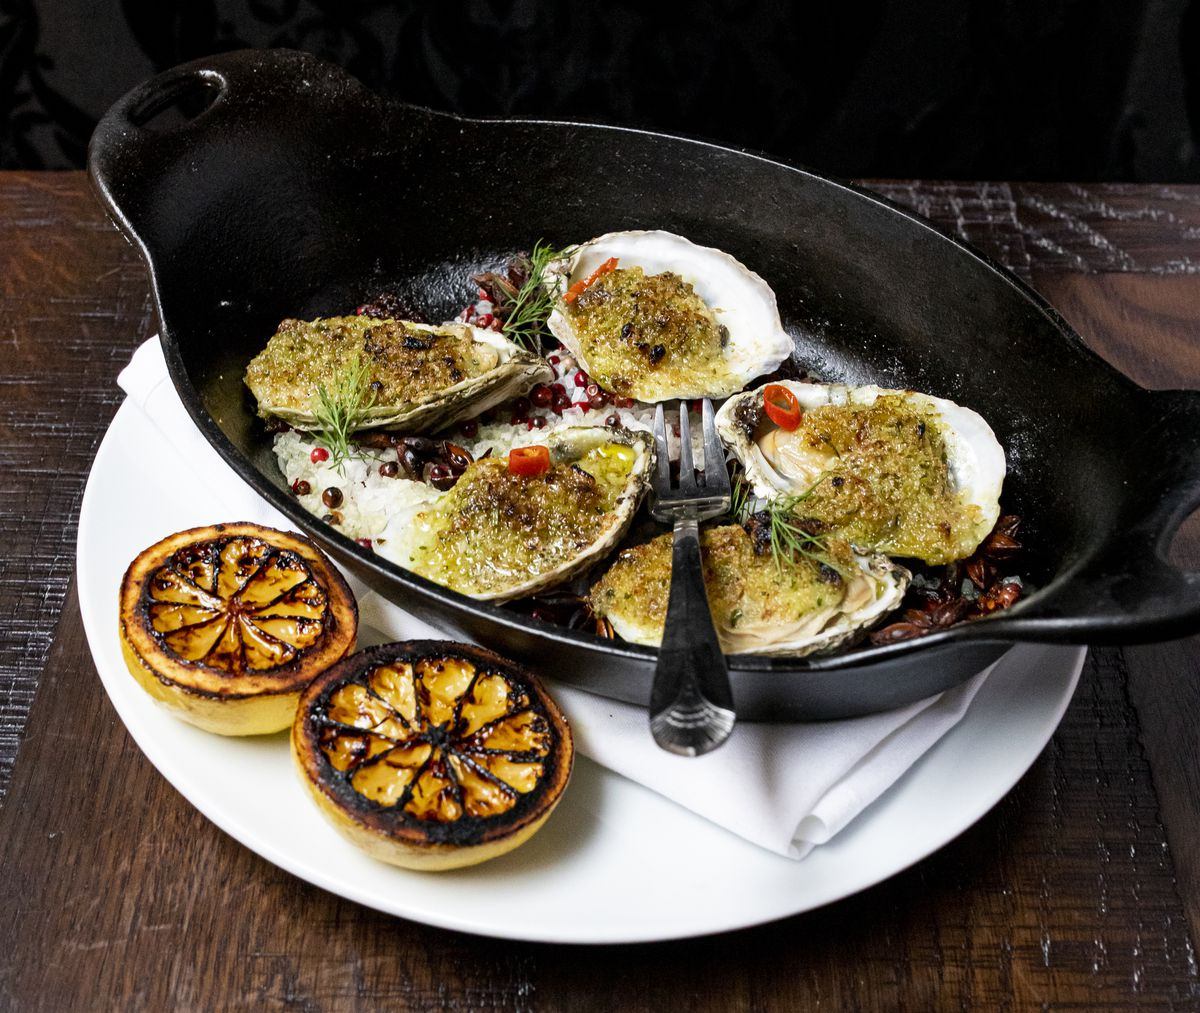 Coal roasted oysters with Pernod garlic butter, bread crumbs, and charred lemon at the Partisan